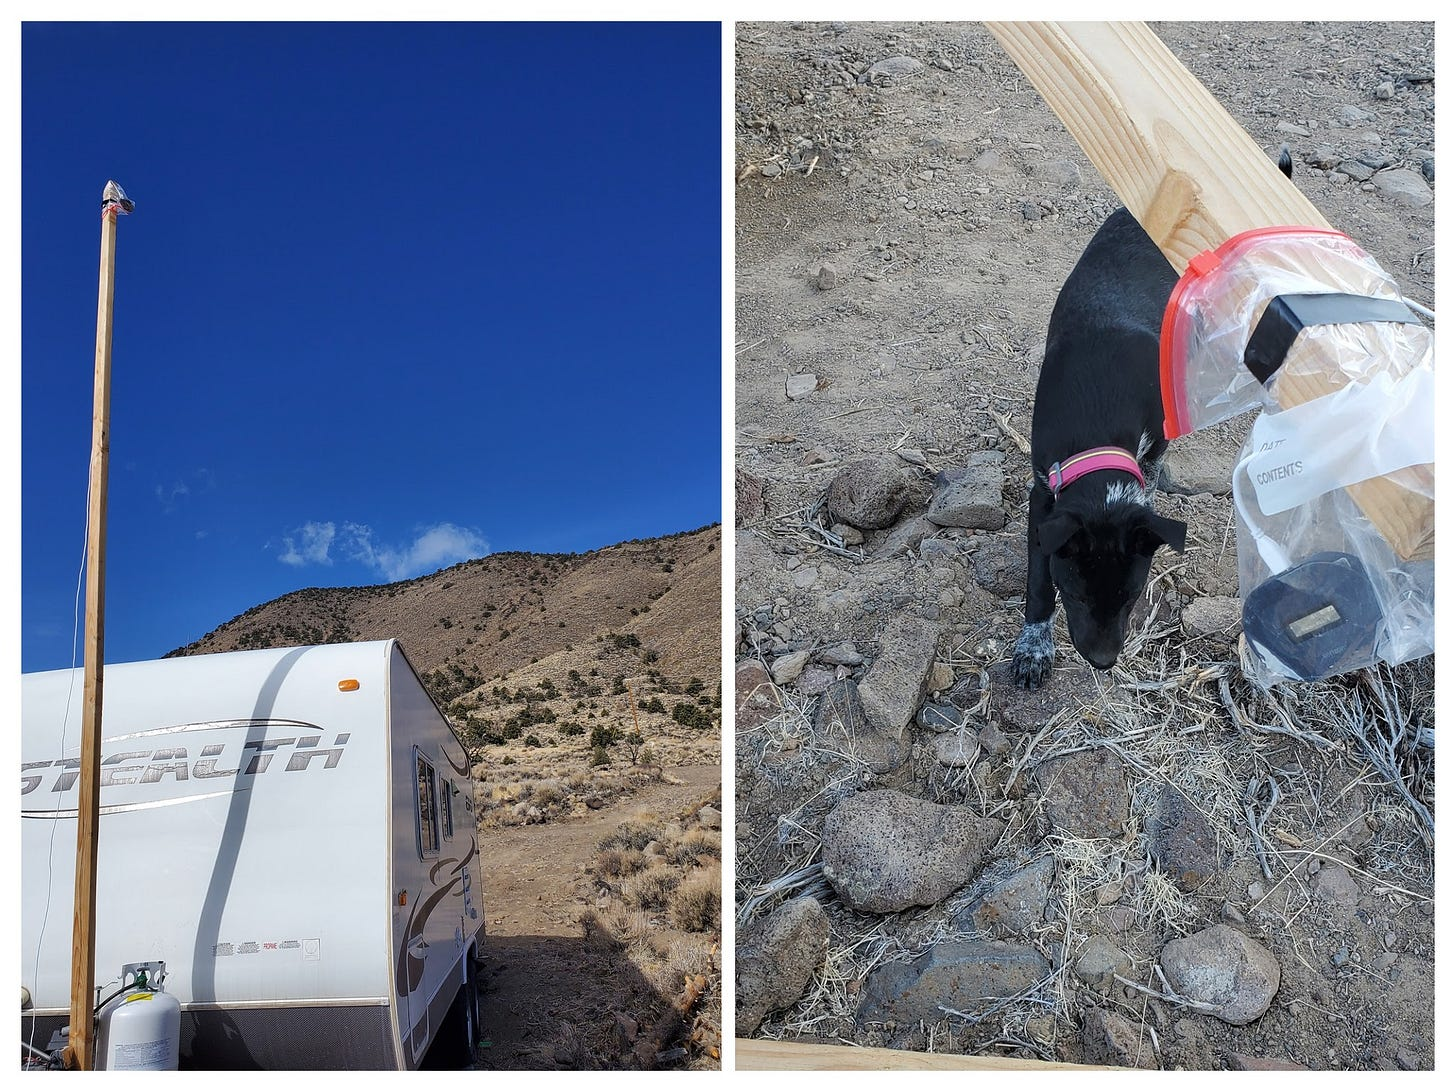 """Collage photo. Image on left shows a 2""""x4"""" wood post at the front of a travel trailer. Image at right shows a close up of the end of the post and a hotspot in a Ziploc bag duct taped to end. A black puppy is nearby checking things out."""